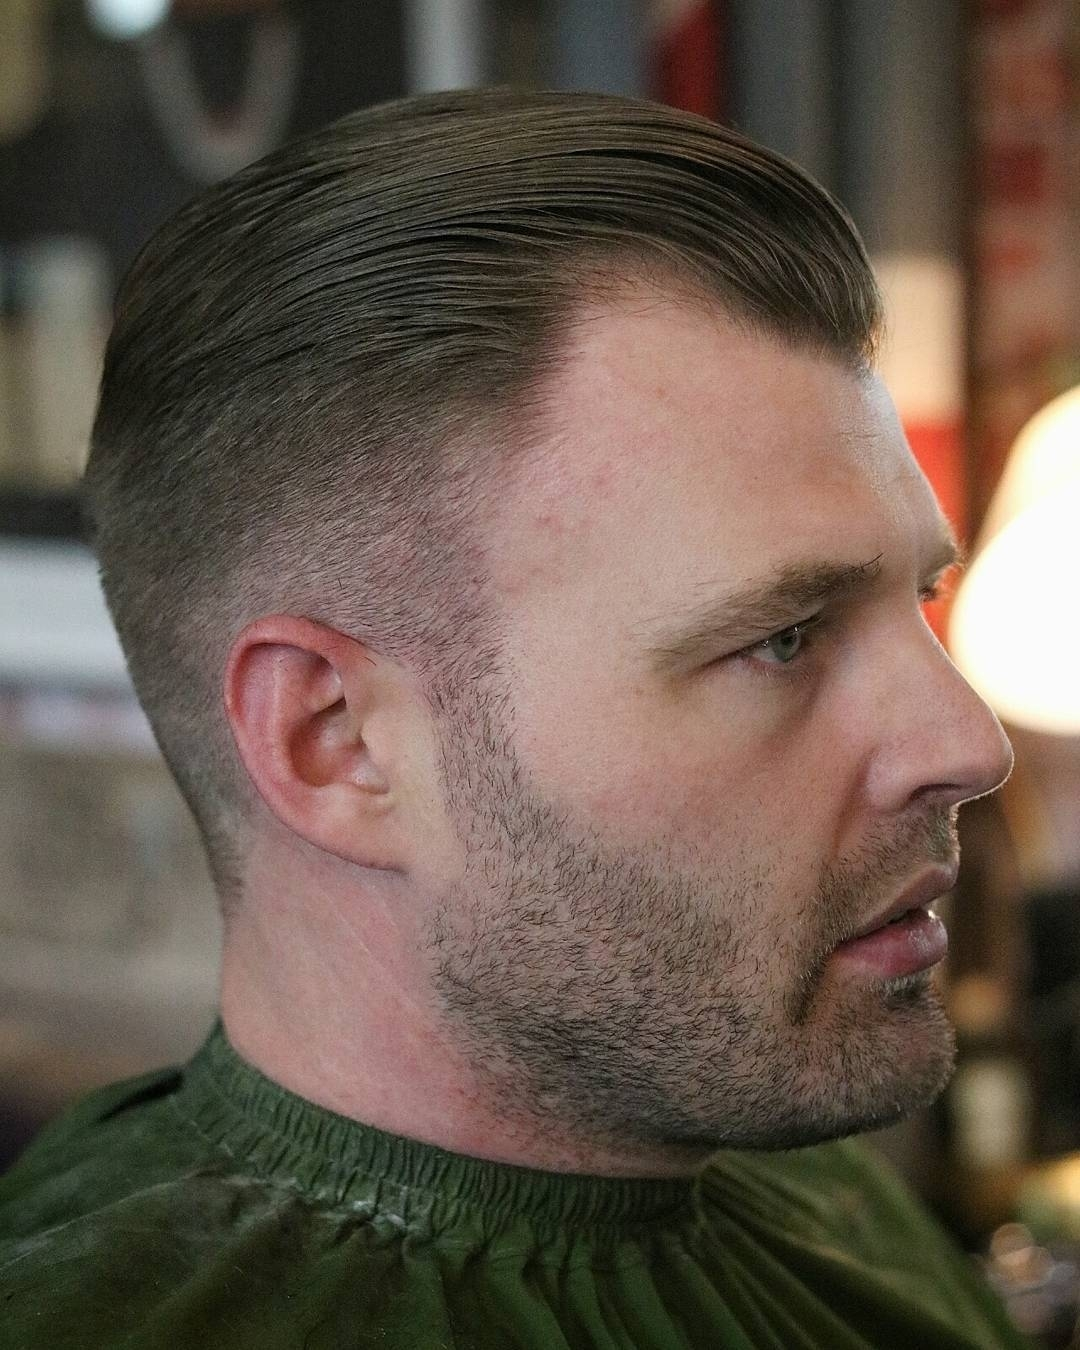 Top 20 New Haircuts + Hairstyles For Men 2018 with regard to Mens Haircuts 2018 Receding Hairline